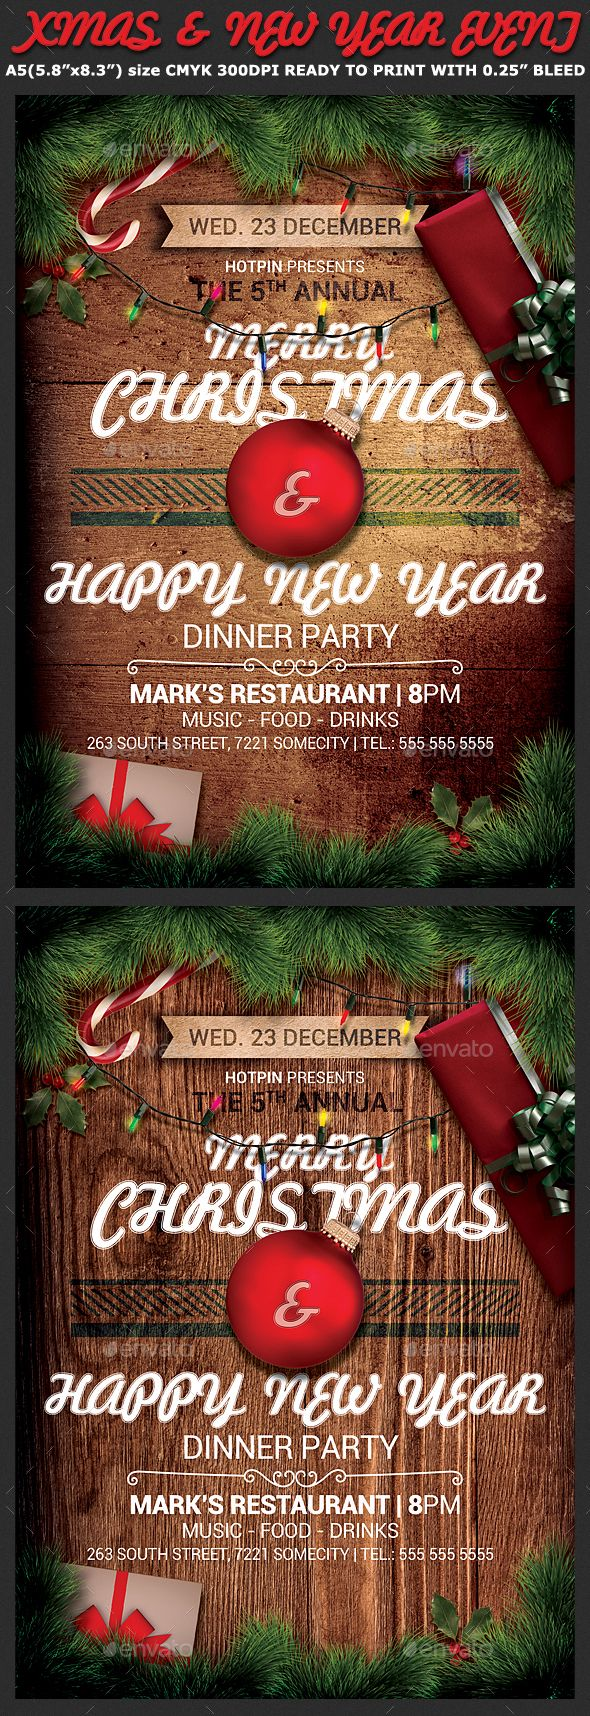 best images about designs i love jazz flyer christmas event flyer template